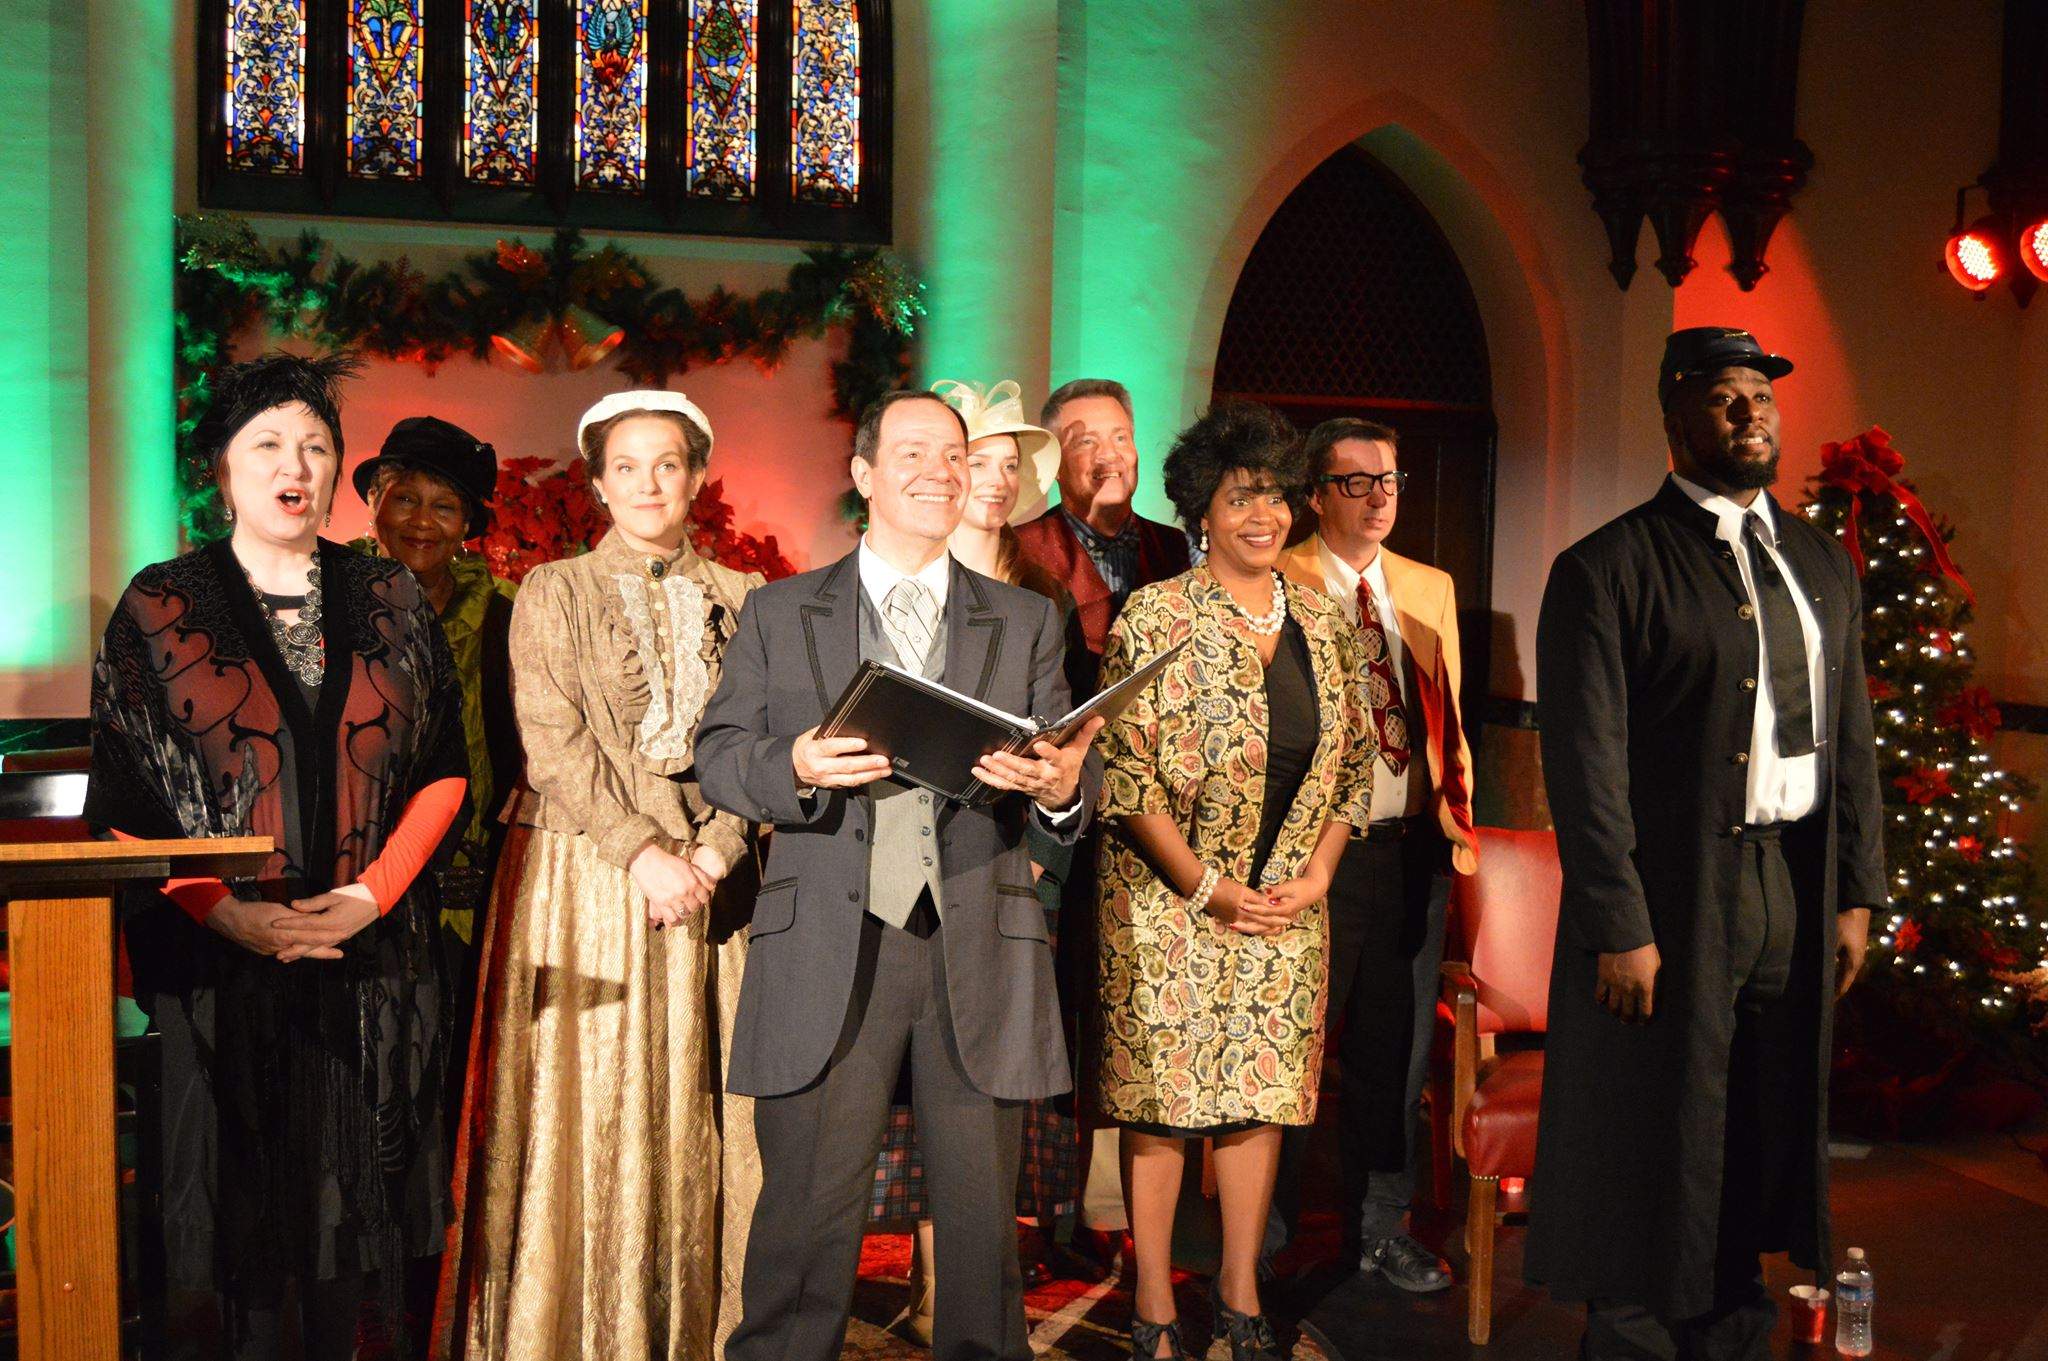 The cast of 'It WAS a Wonderful Life' performs through Dec. 31.